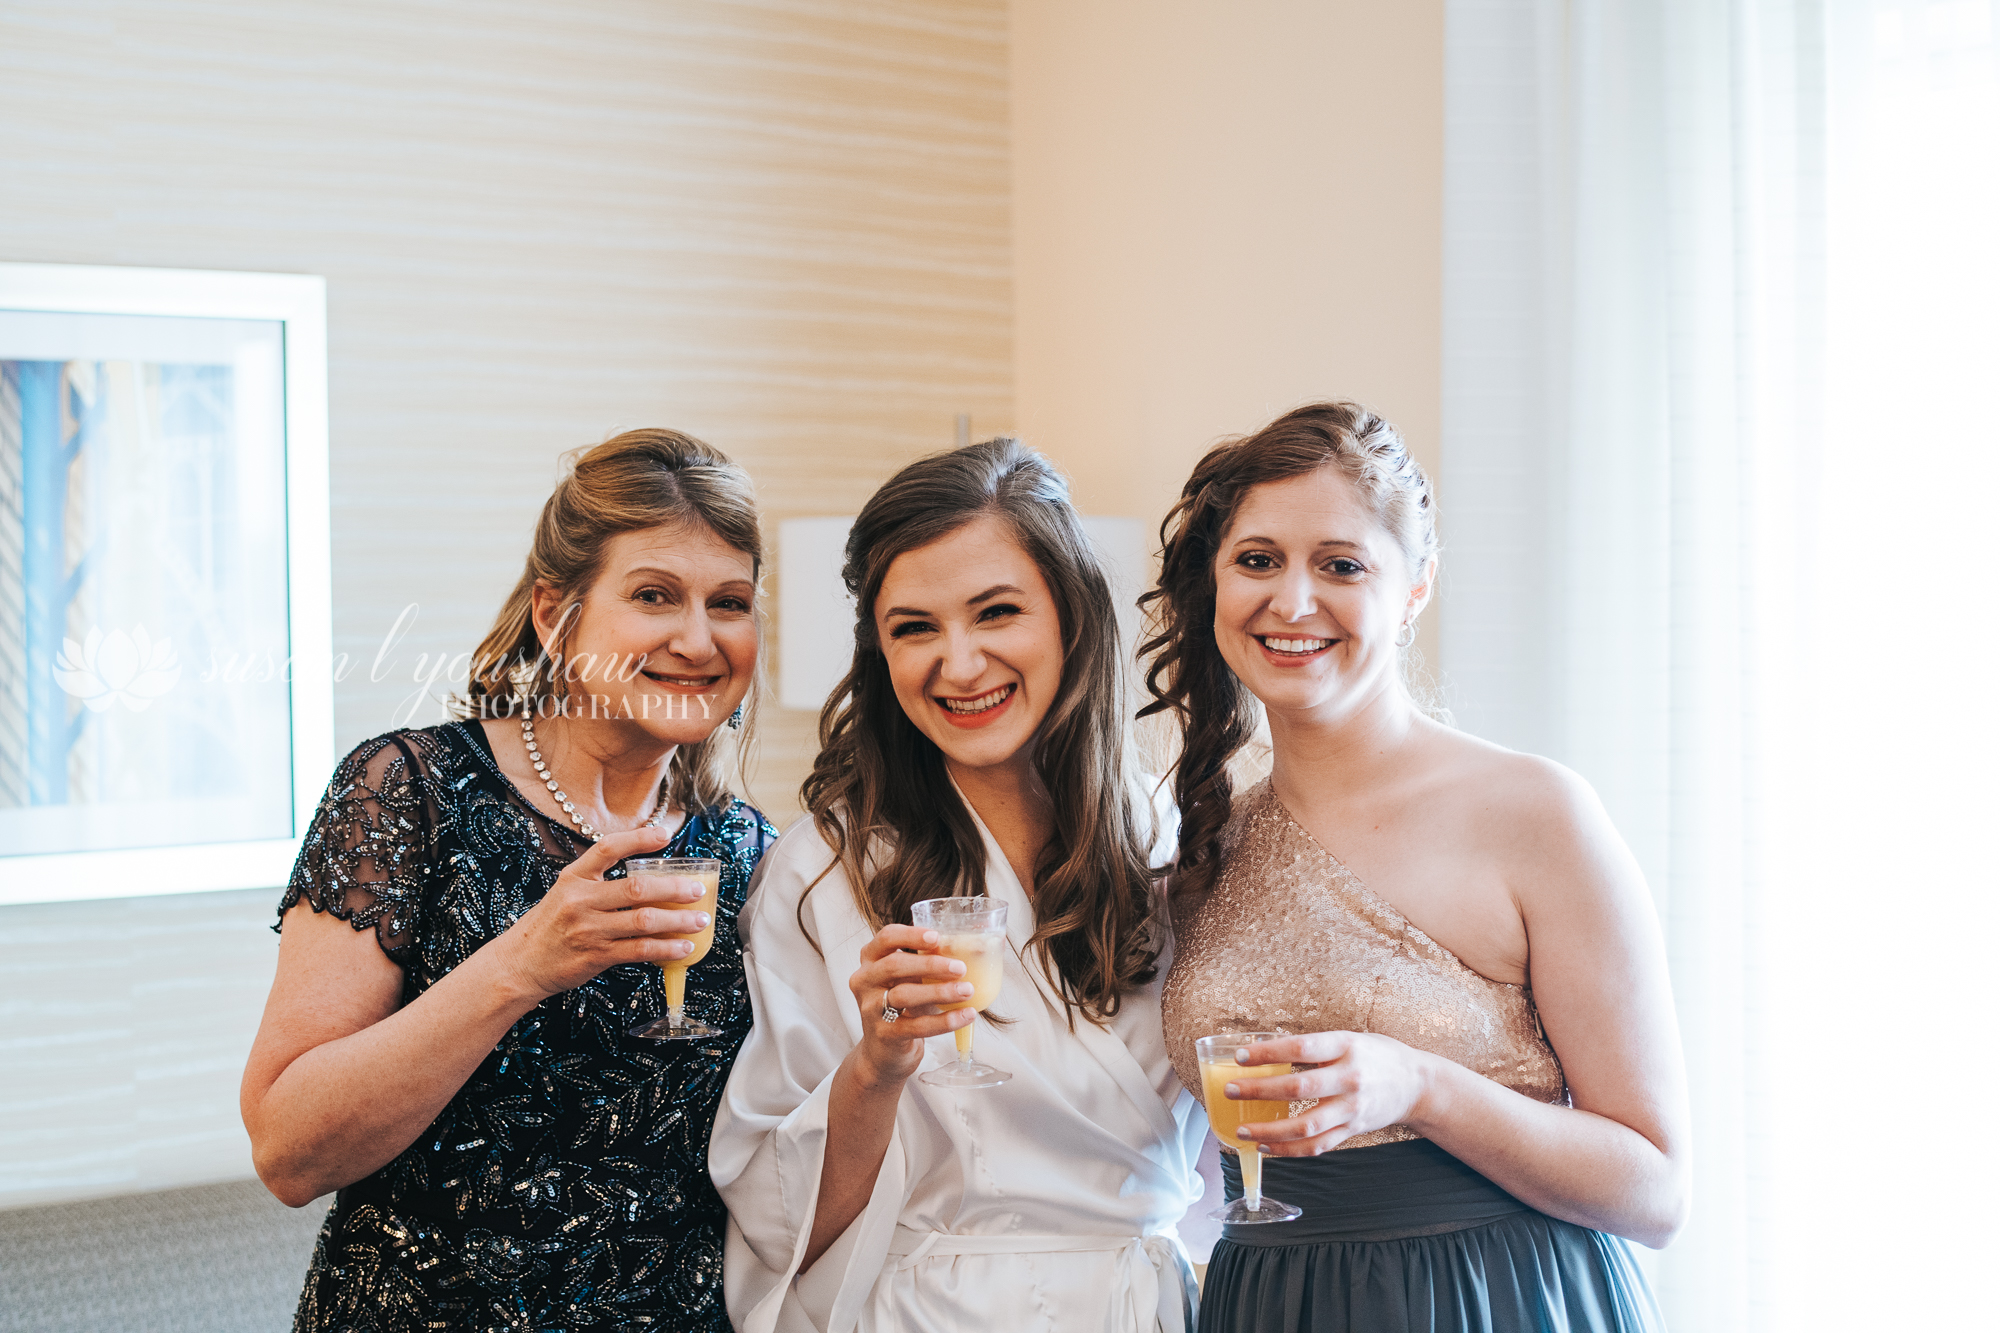 Chynna and John Wedding 05-18-2019 SLY Photography-17.jpg